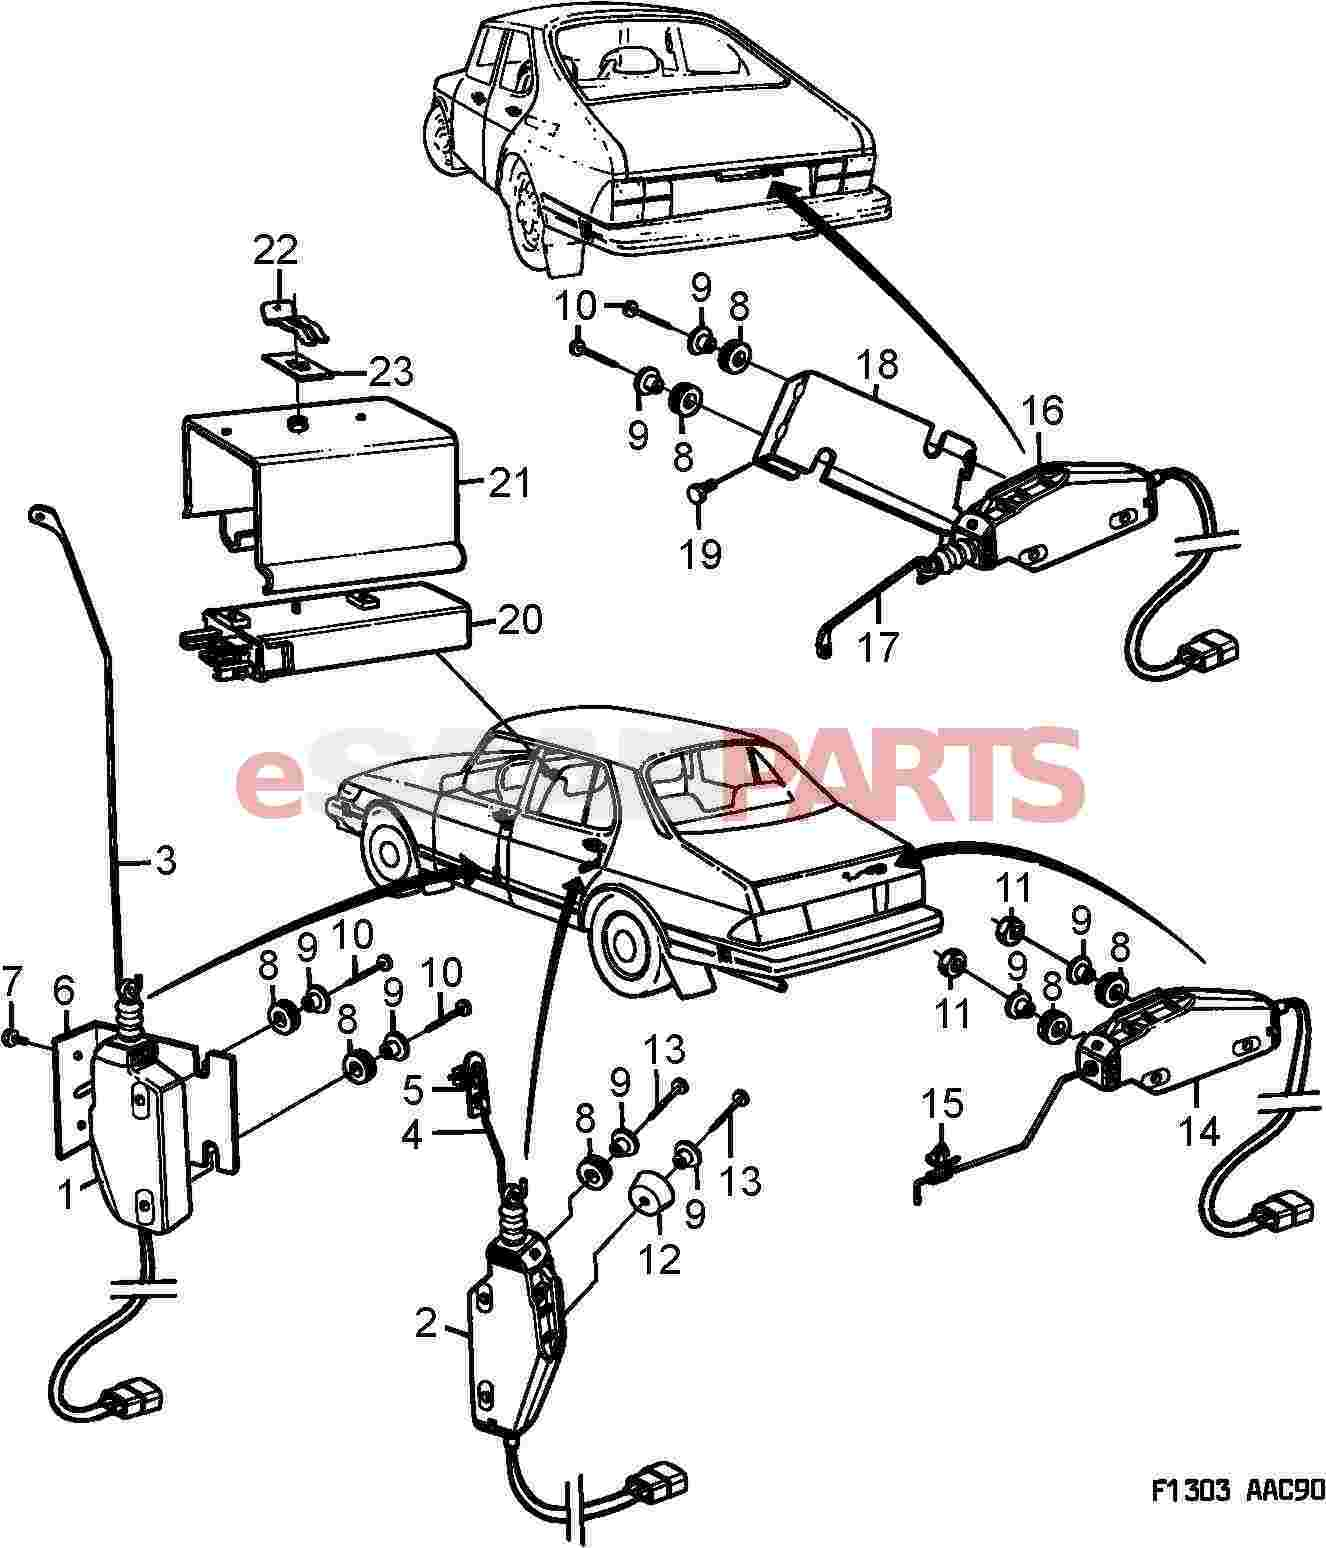 toyota mr2 roadster fuse box diagram